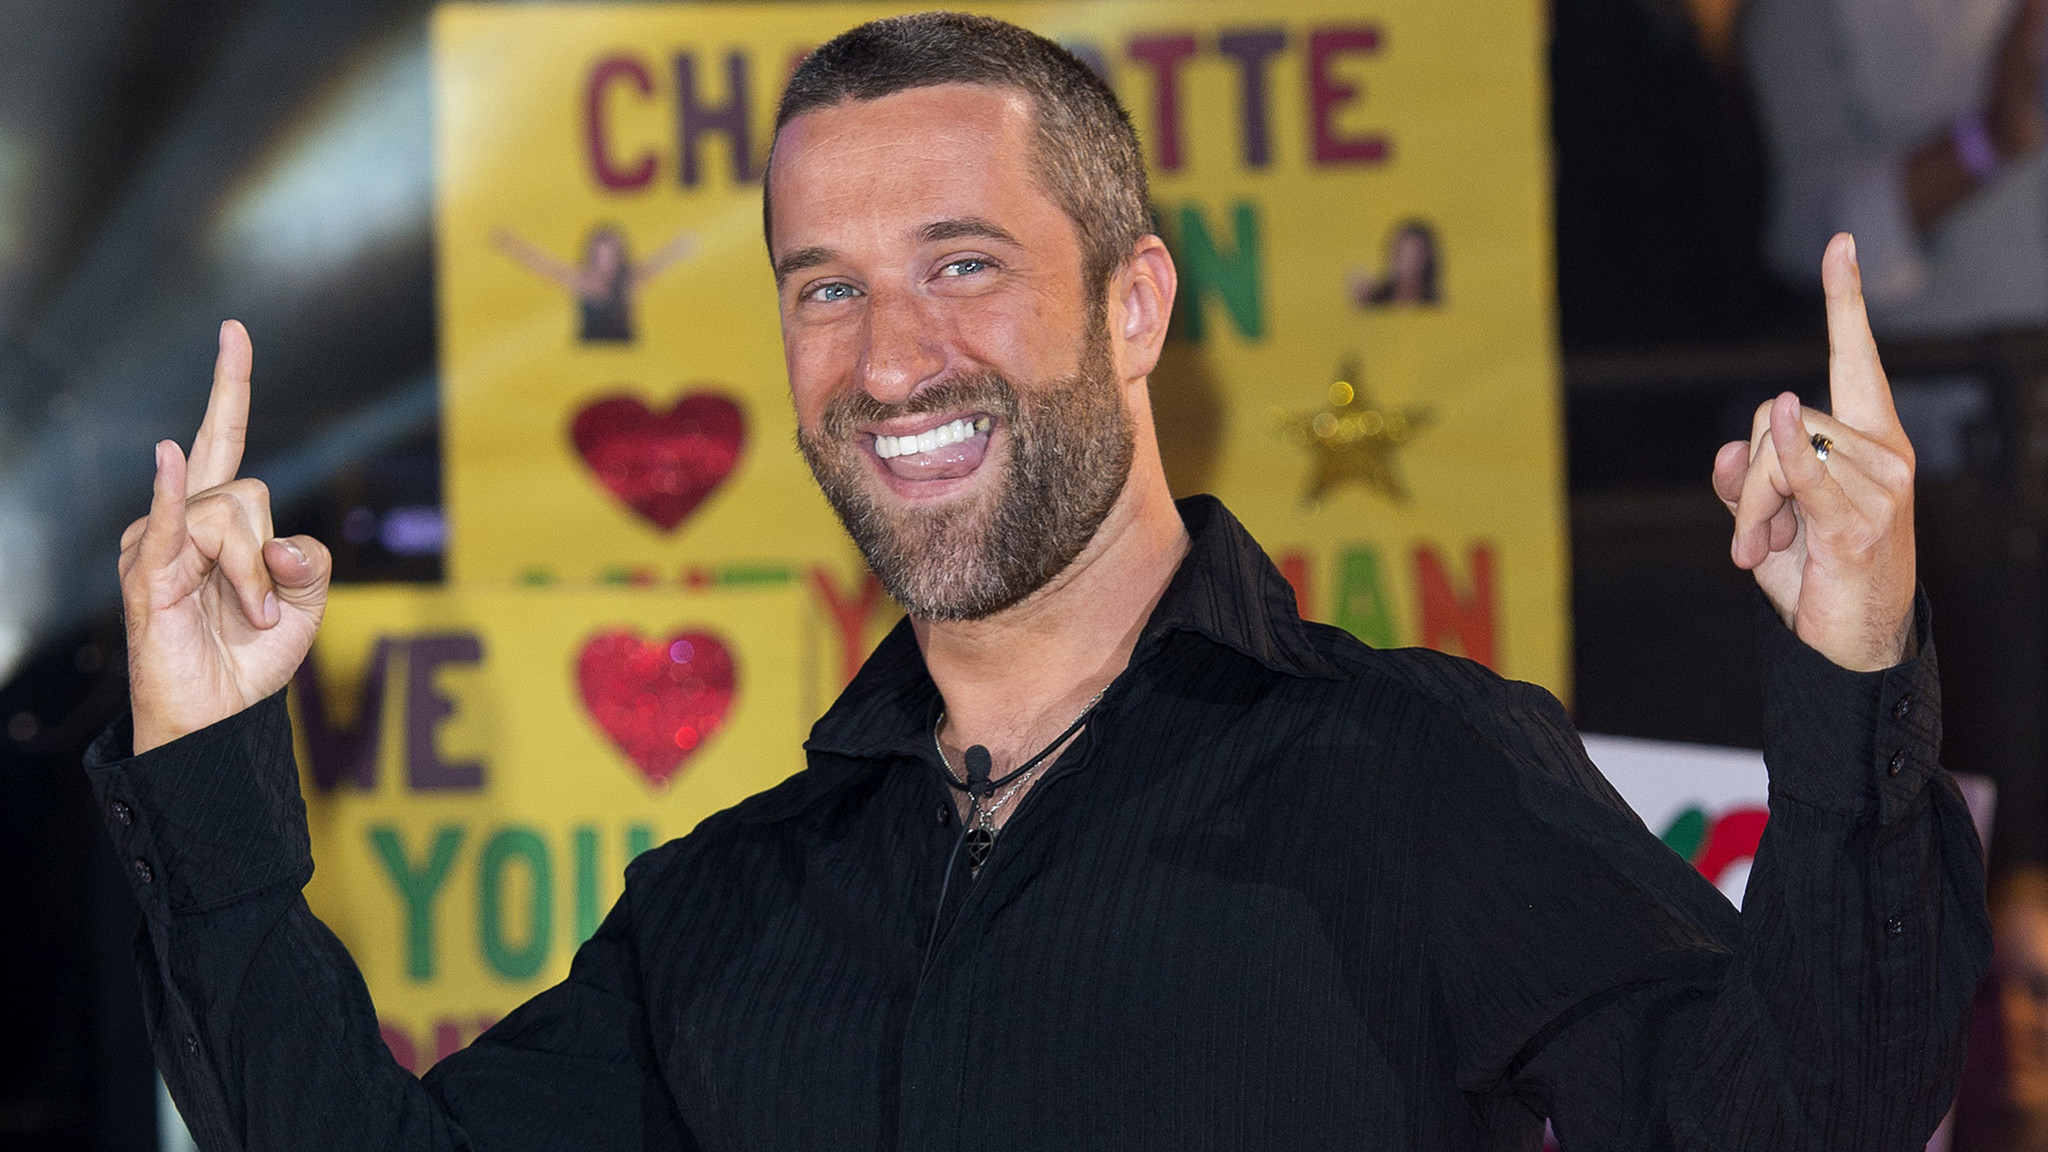 Dustin Diamond Screech From Saved By The Bell Arrested